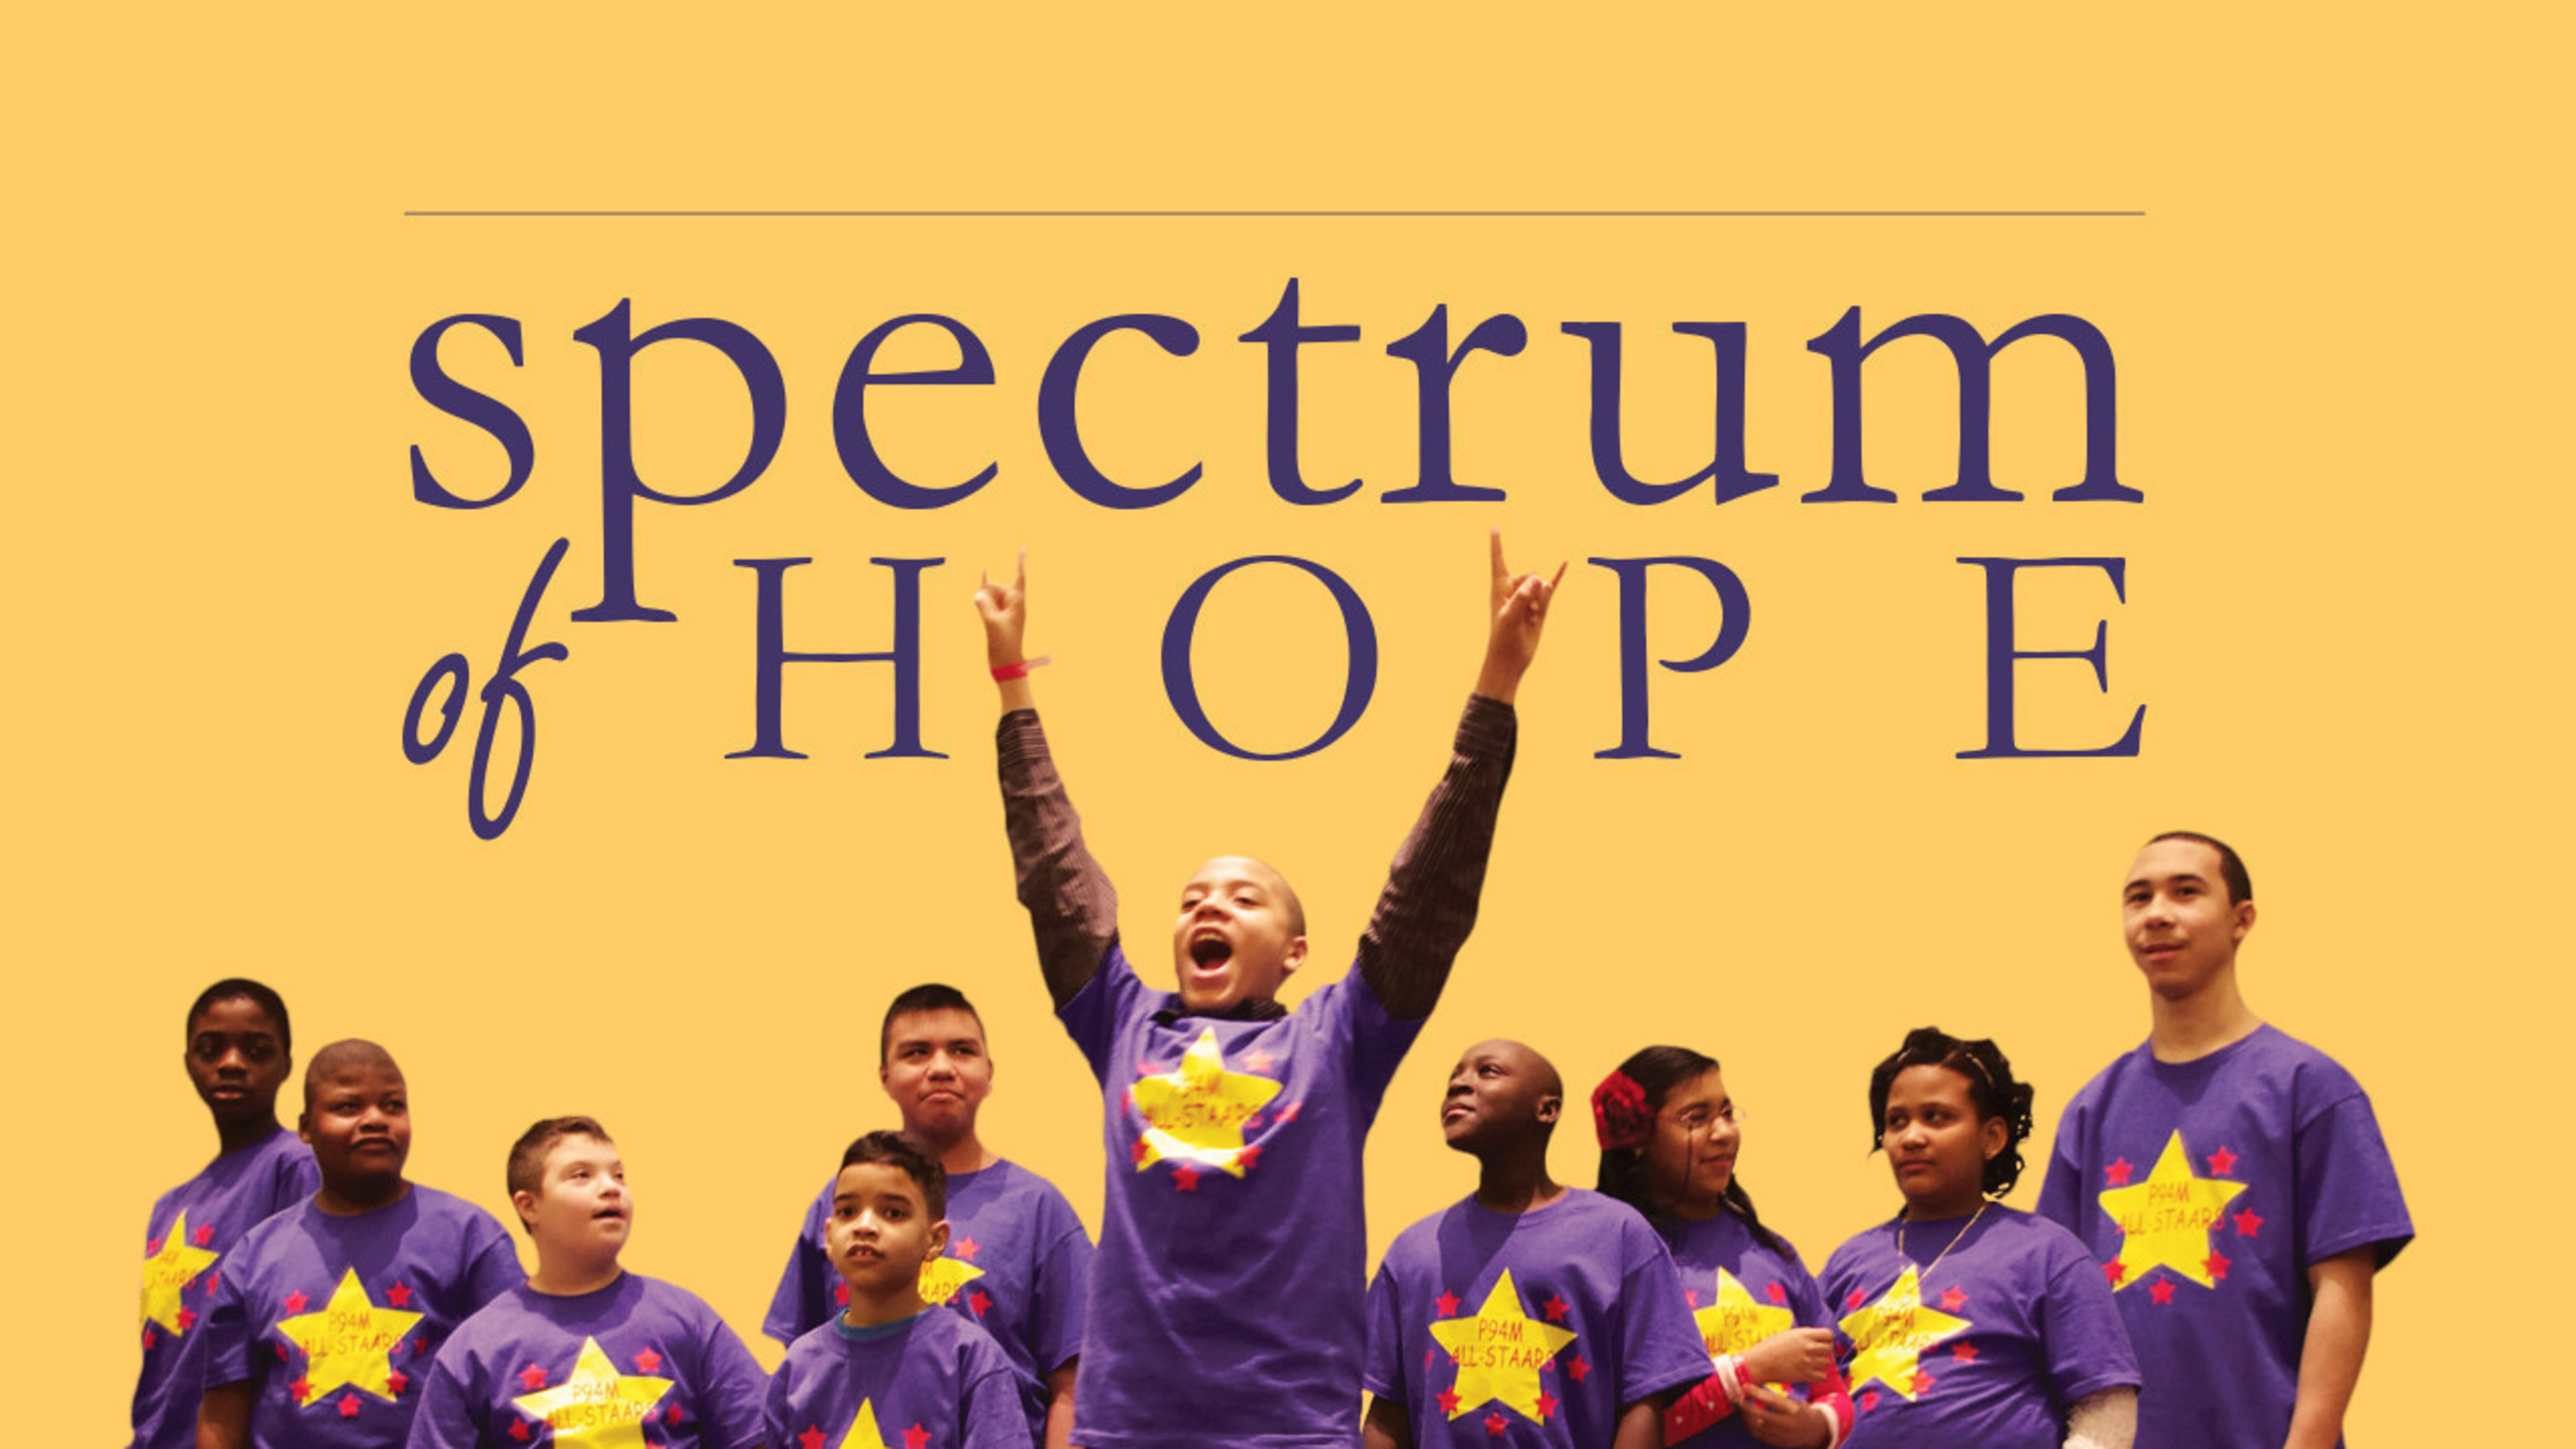 SPECTRUM OF HOPE: An Inspiring Film About Students, Teachers And The Power Of Arts Education Available Via SundanceNow Doc Club In Time For April Autism Awareness Month